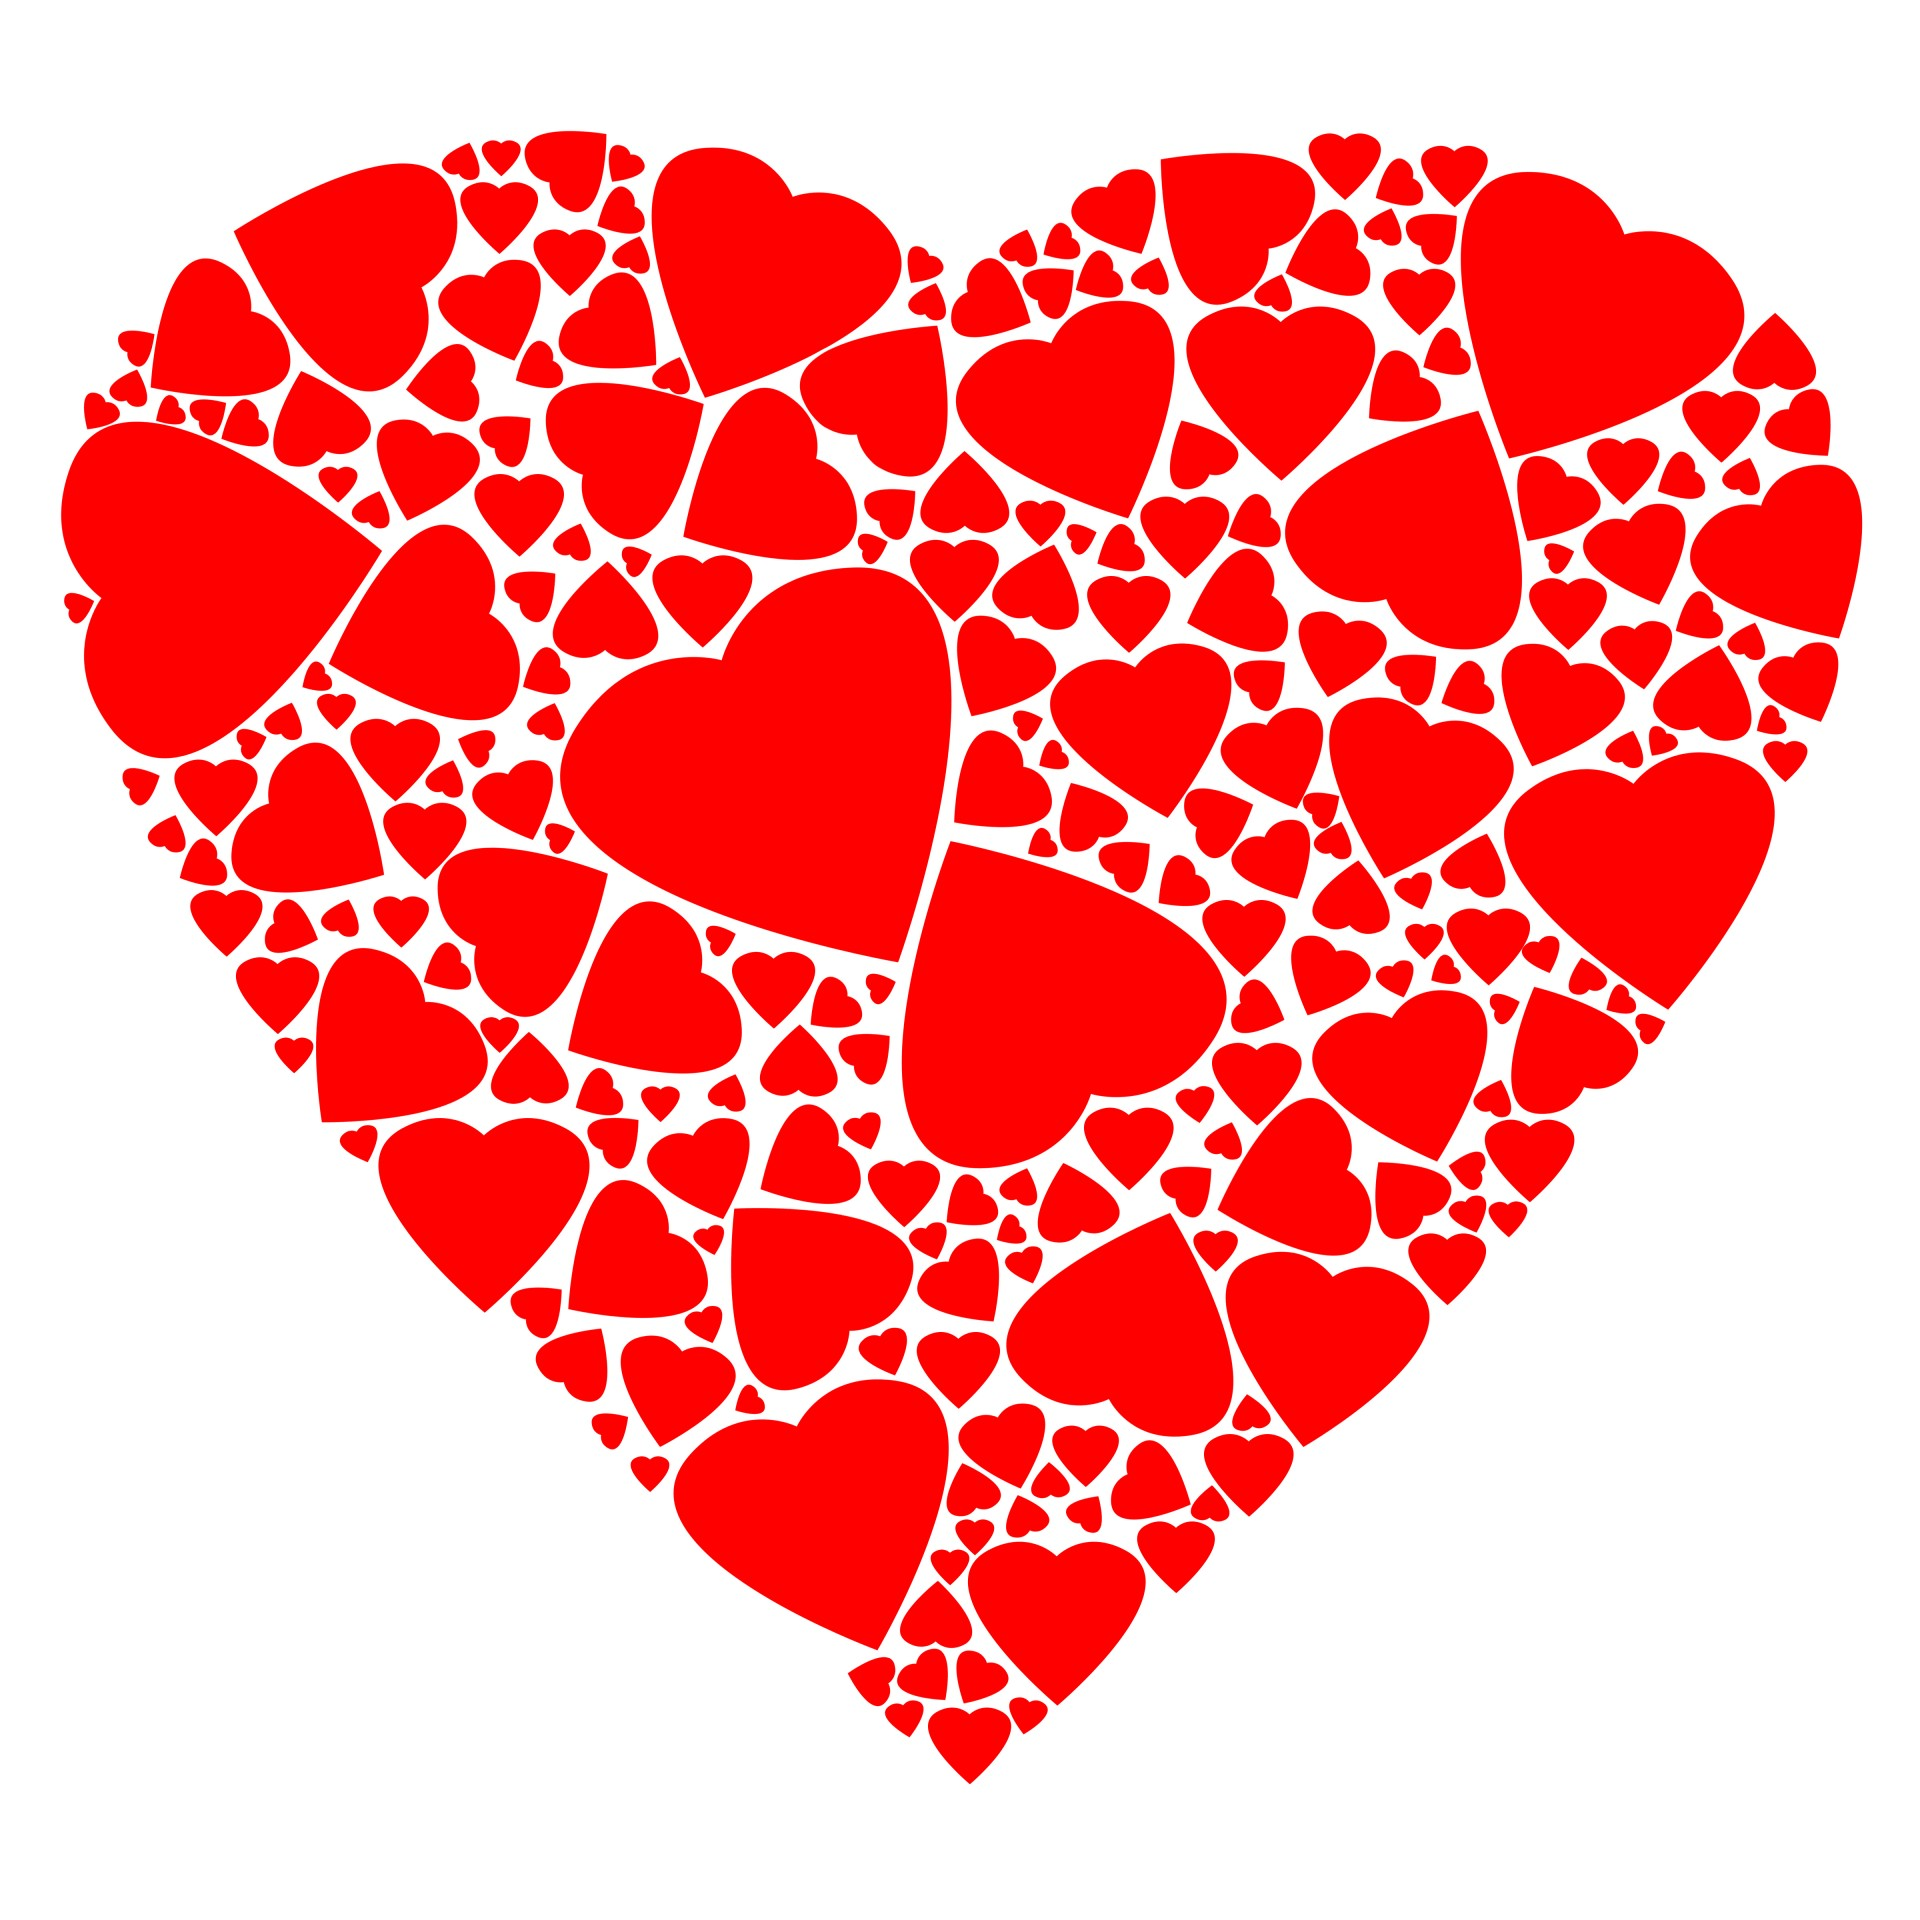 Heart Of Hearts Free Stock Photo - Public Domain Pictures